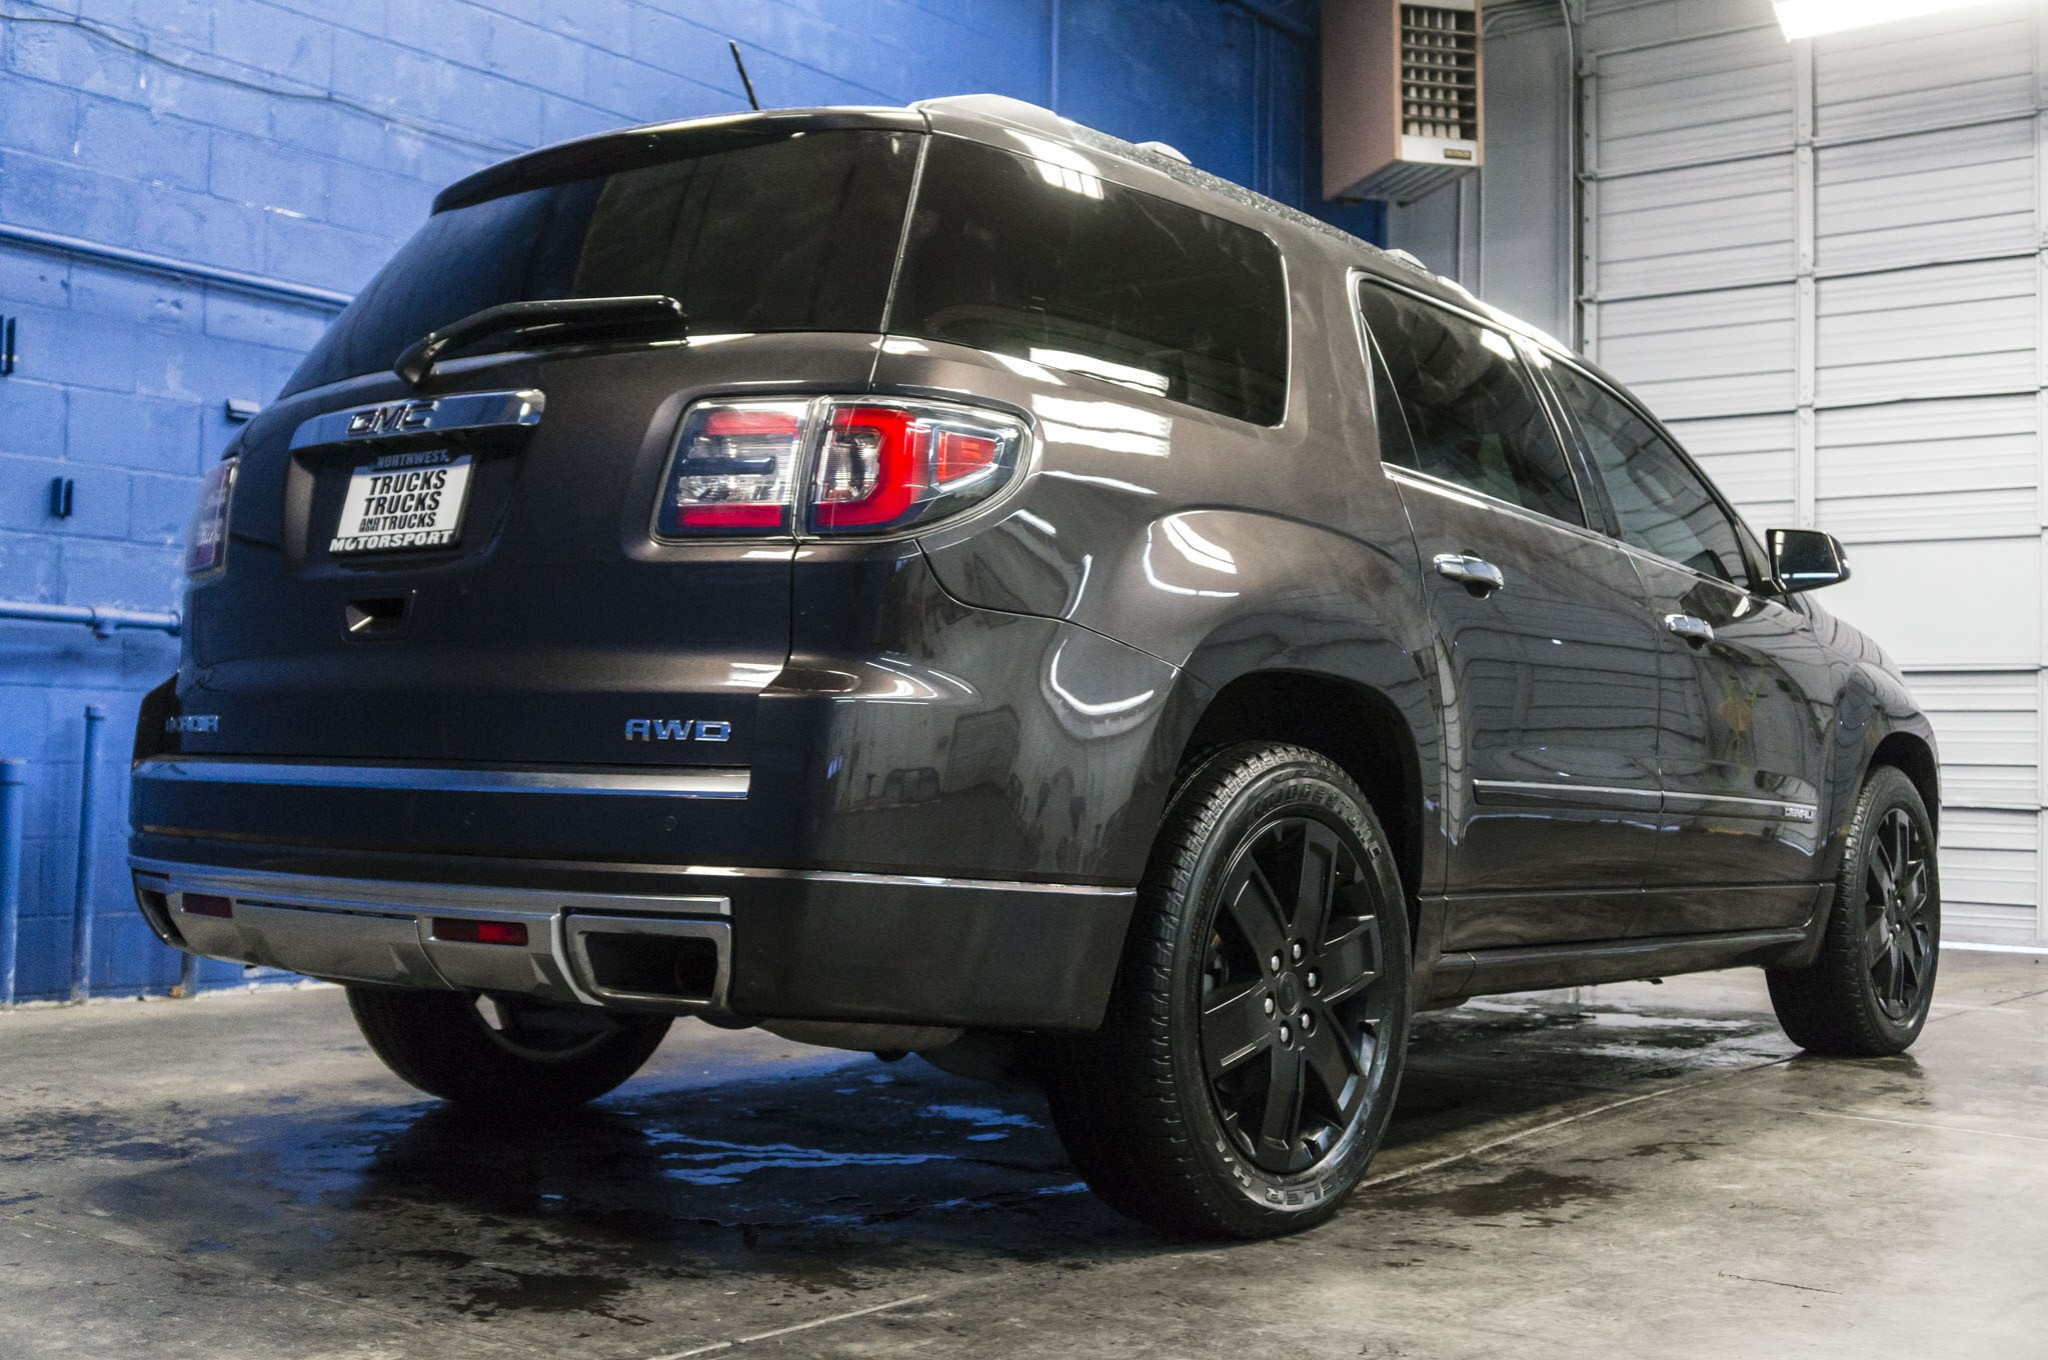 vehicles used il sale crop photo in vehicle vehicledetails joliet sp for gmc turntable denali acadia